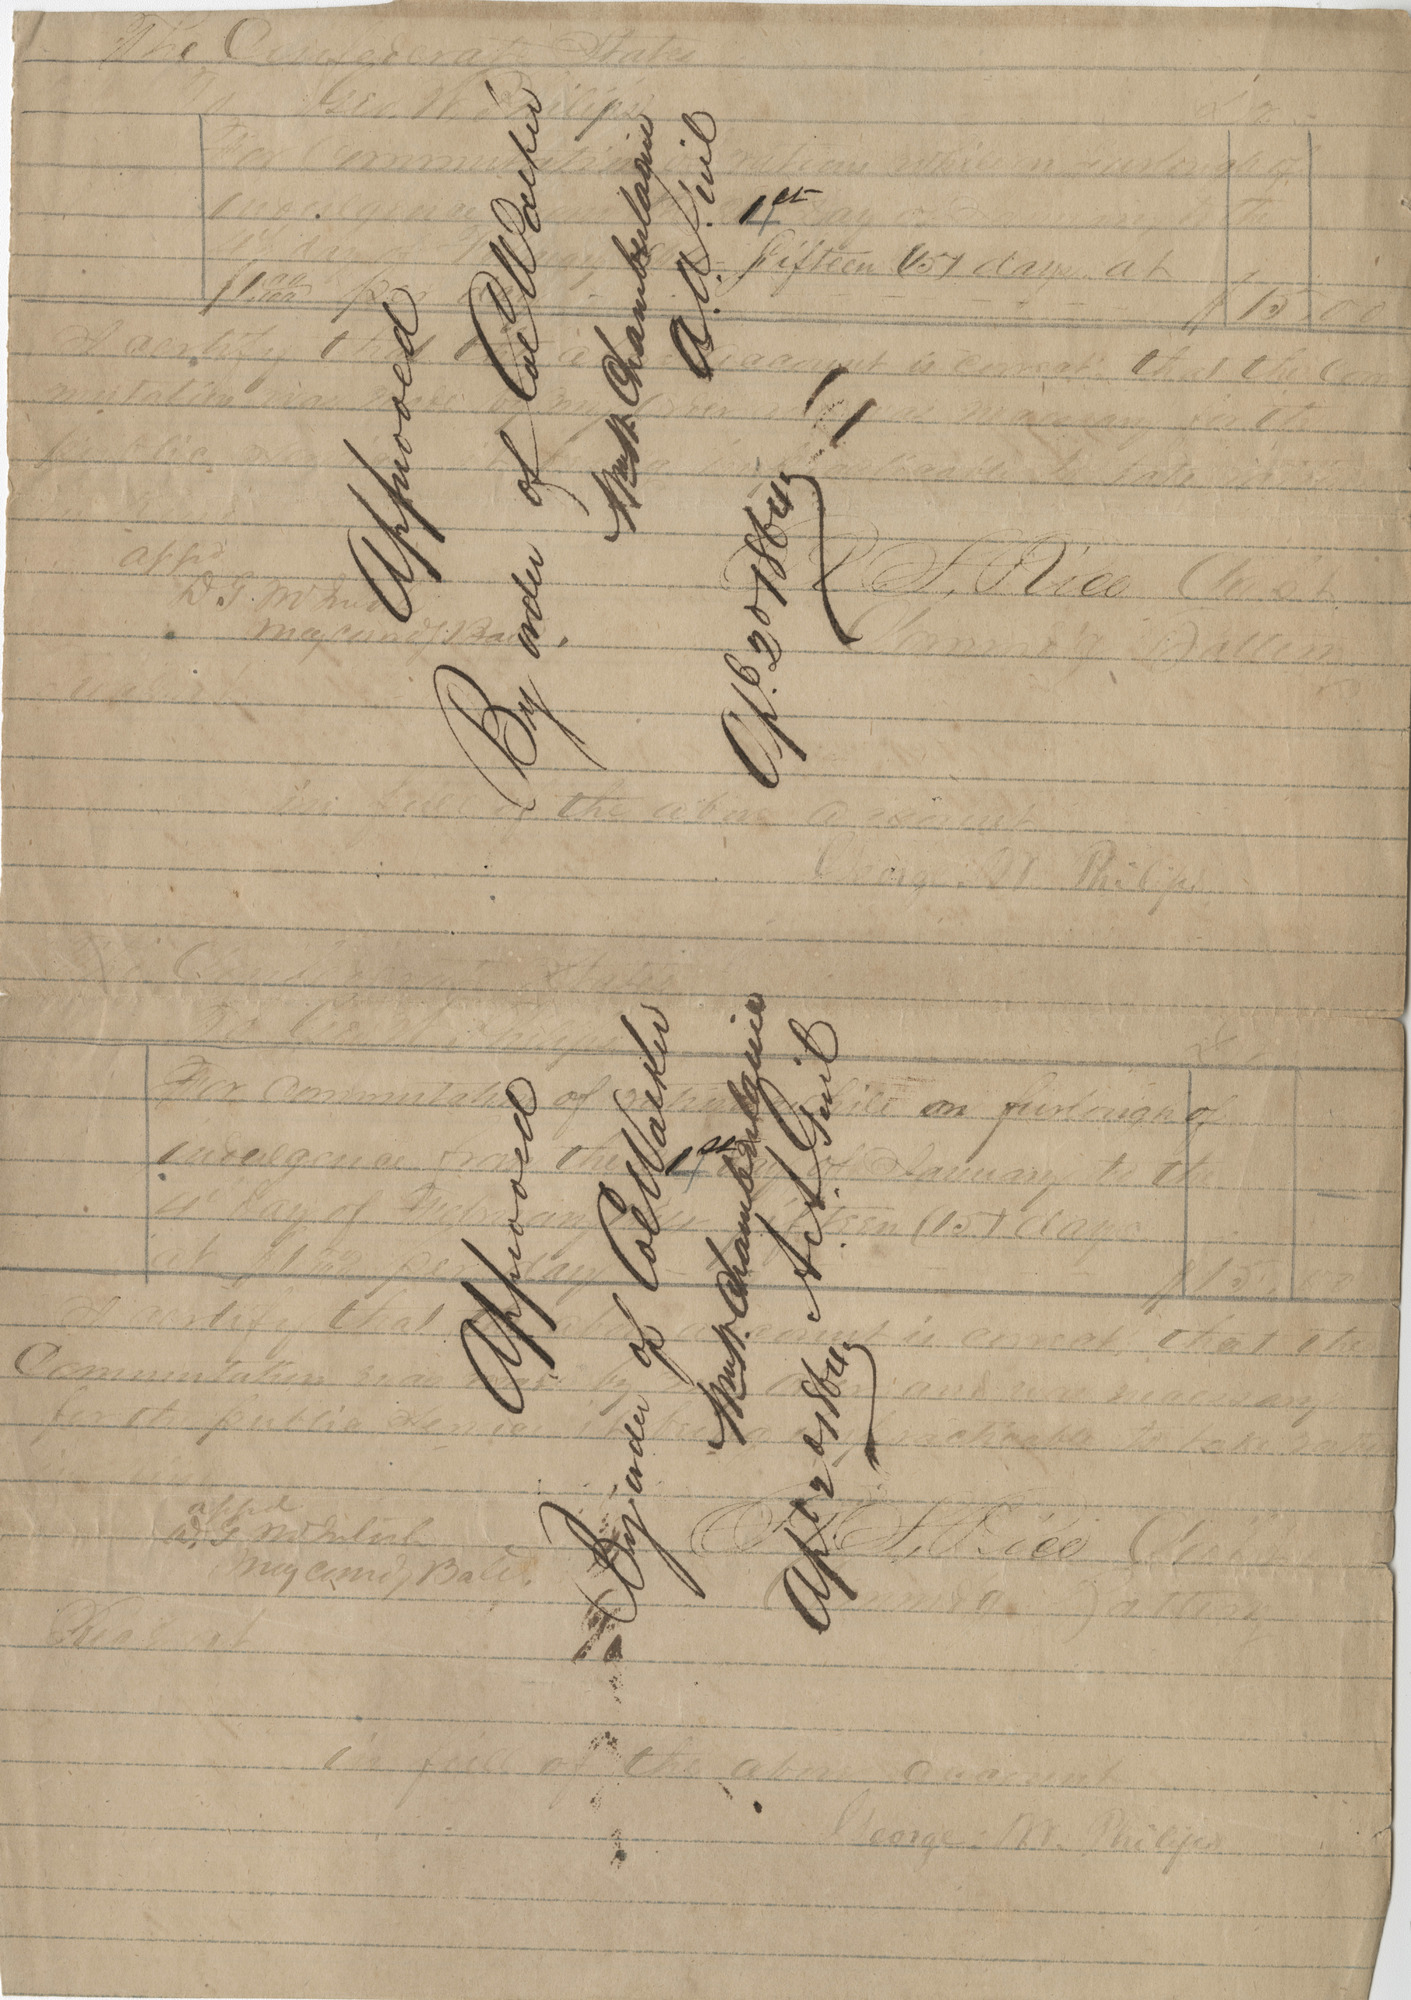 http://spec.lib.vt.edu/pickup/Omeka_upload/Ms1984-172_KoontzFamily_F9_Letter_1864_0402a.jpg